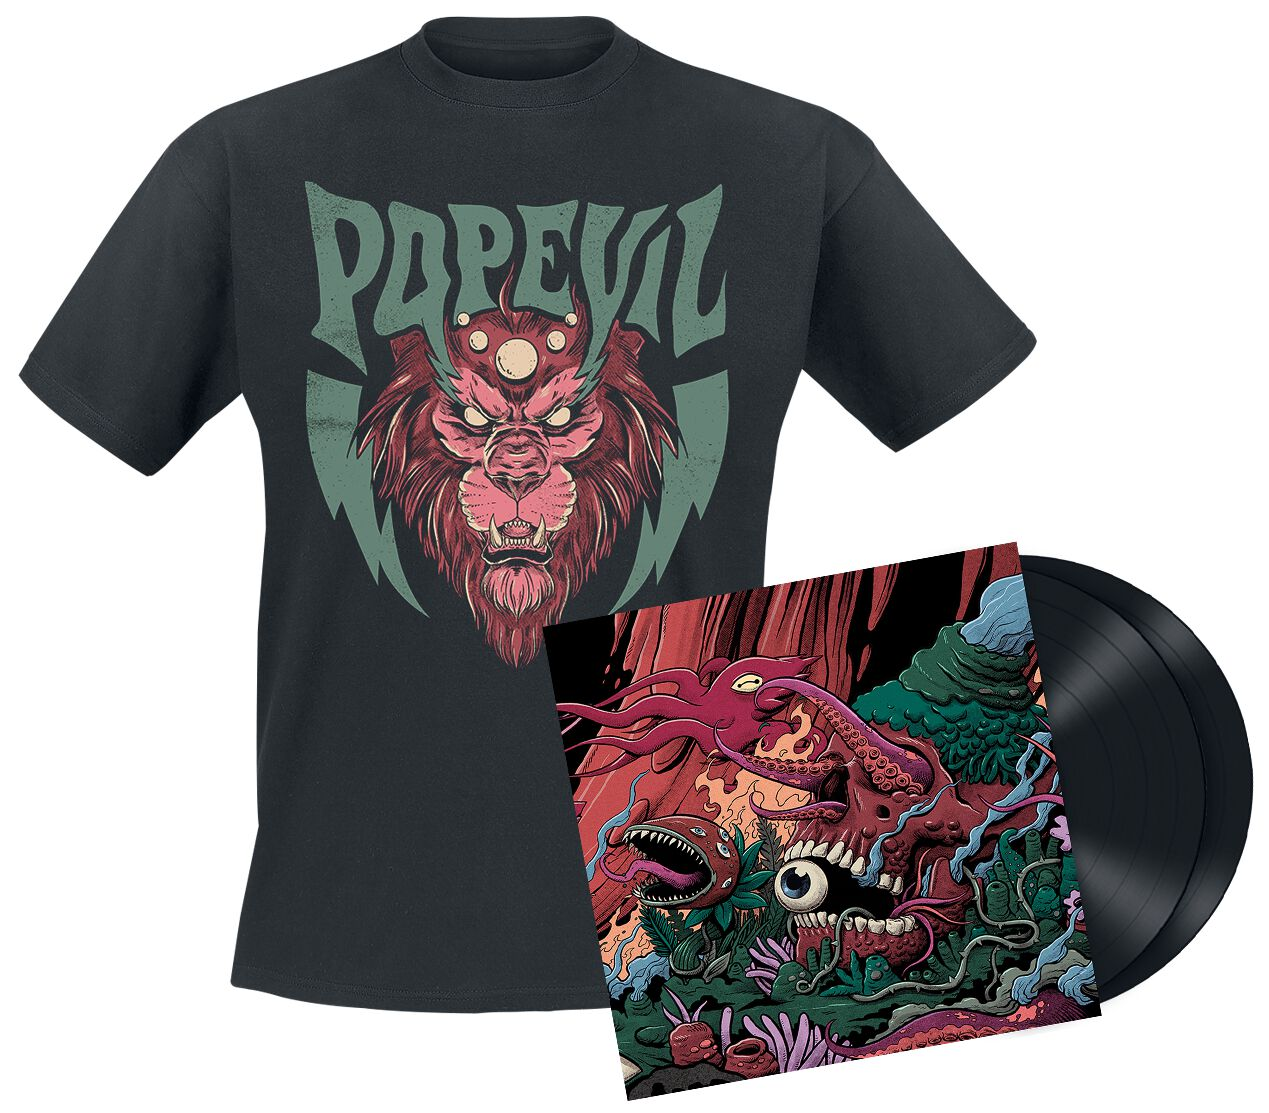 Image of Pop Evil Versatile 2-LP & T-Shirt schwarz